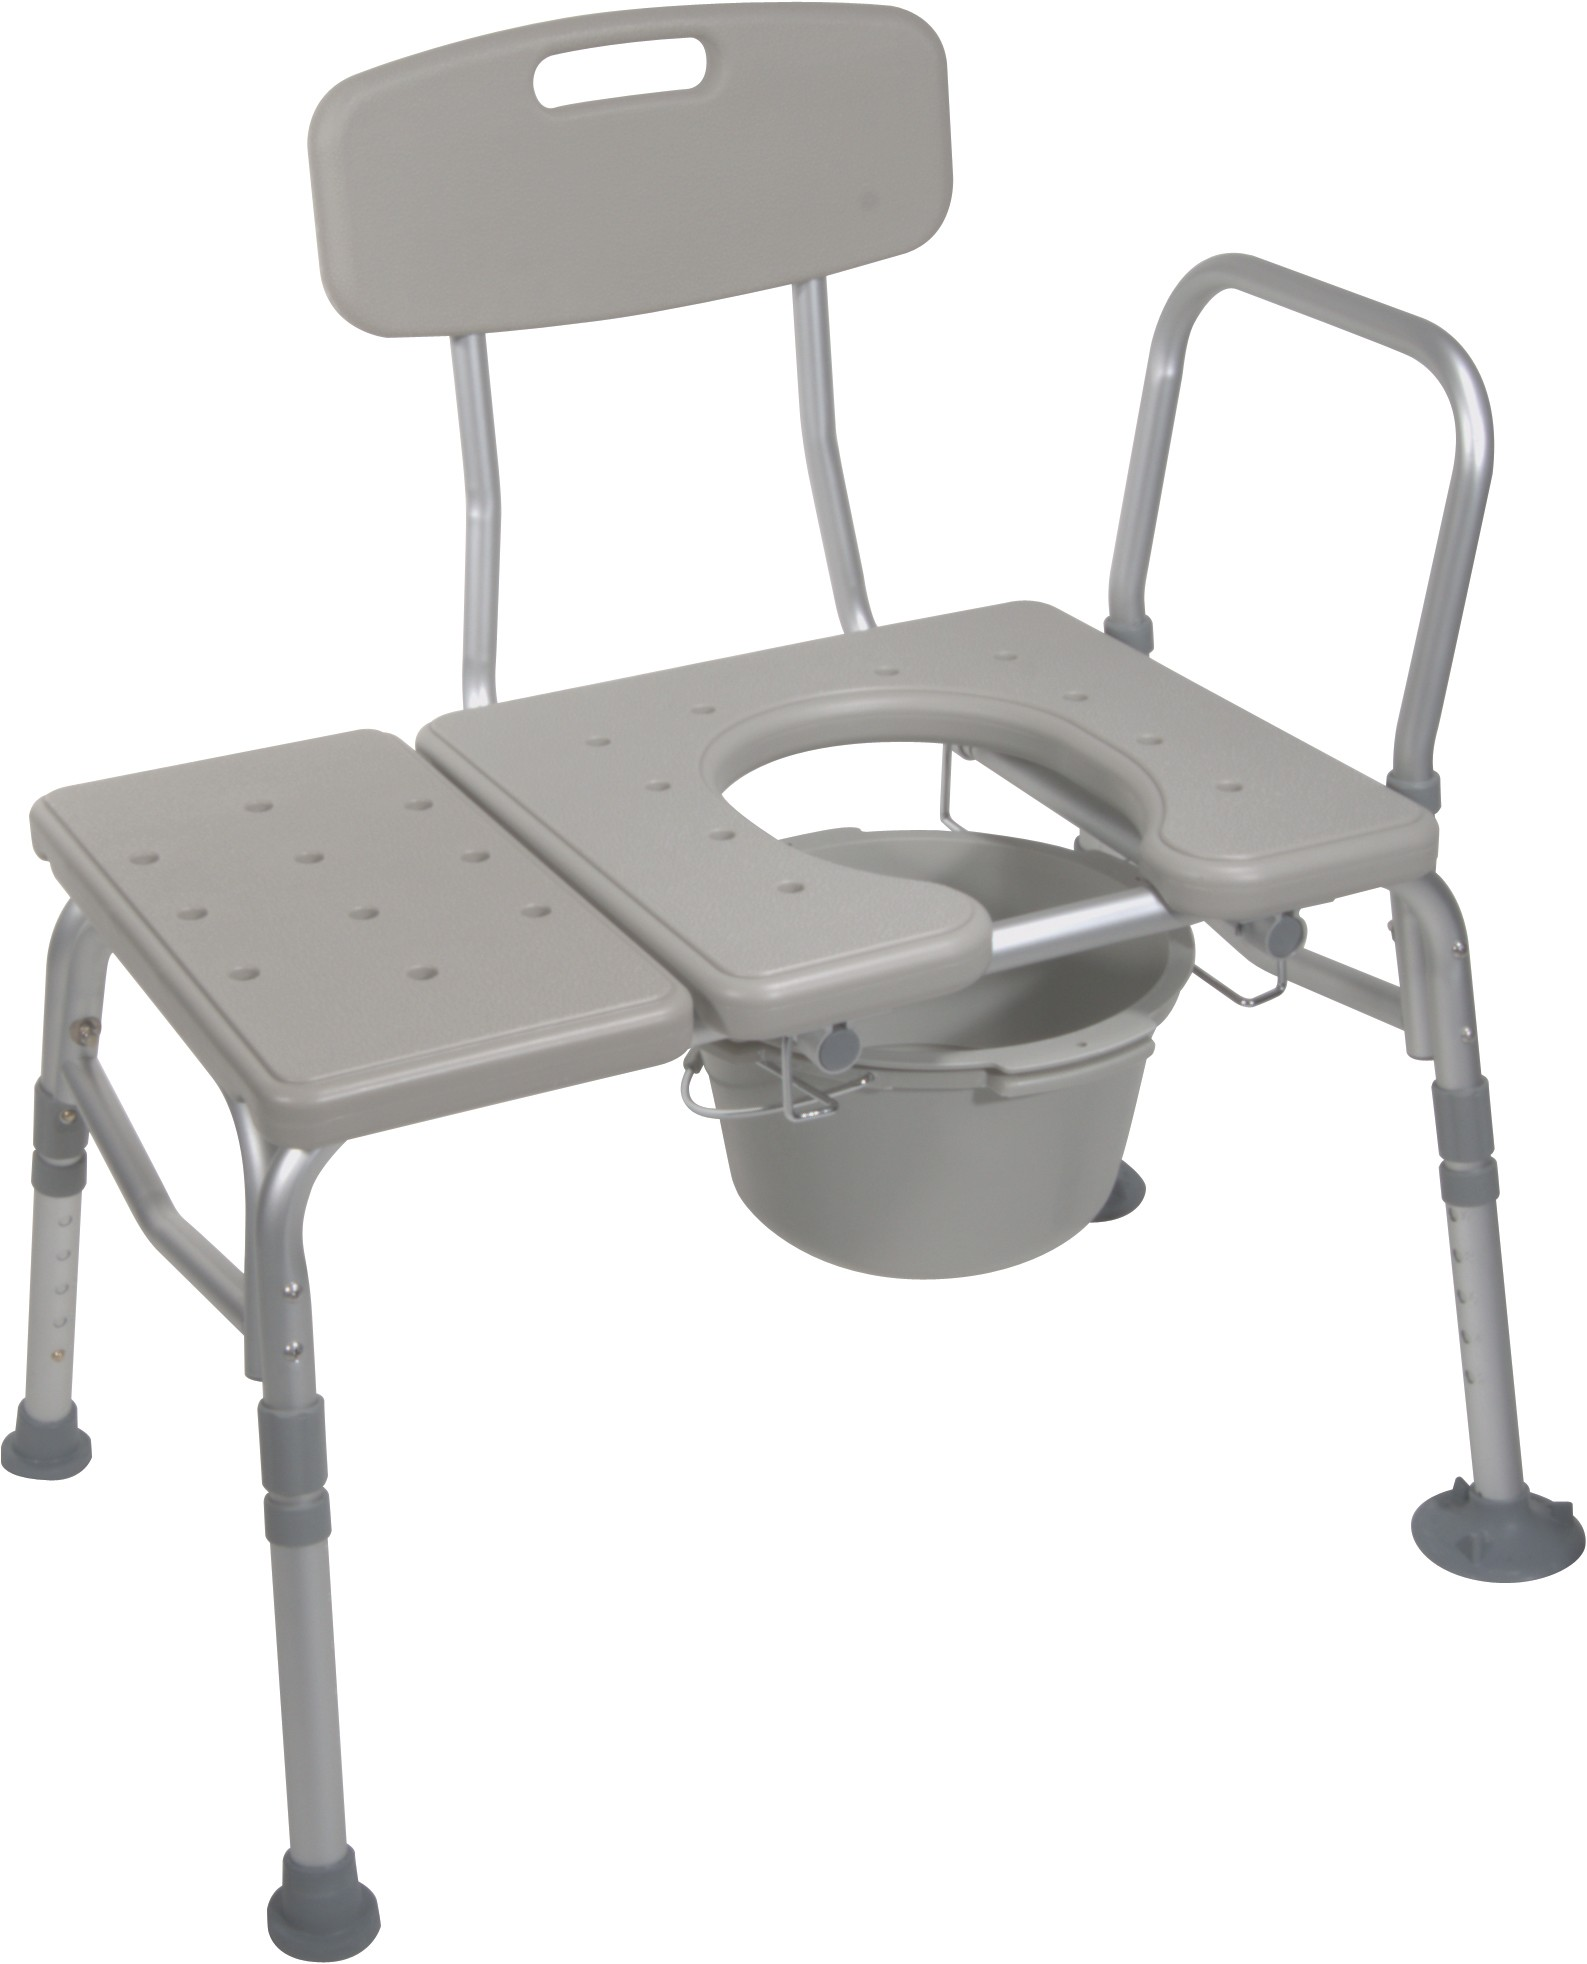 Transfer Tub Bench | Shower Bench Walgreens | Bathtub Seat for Elderly